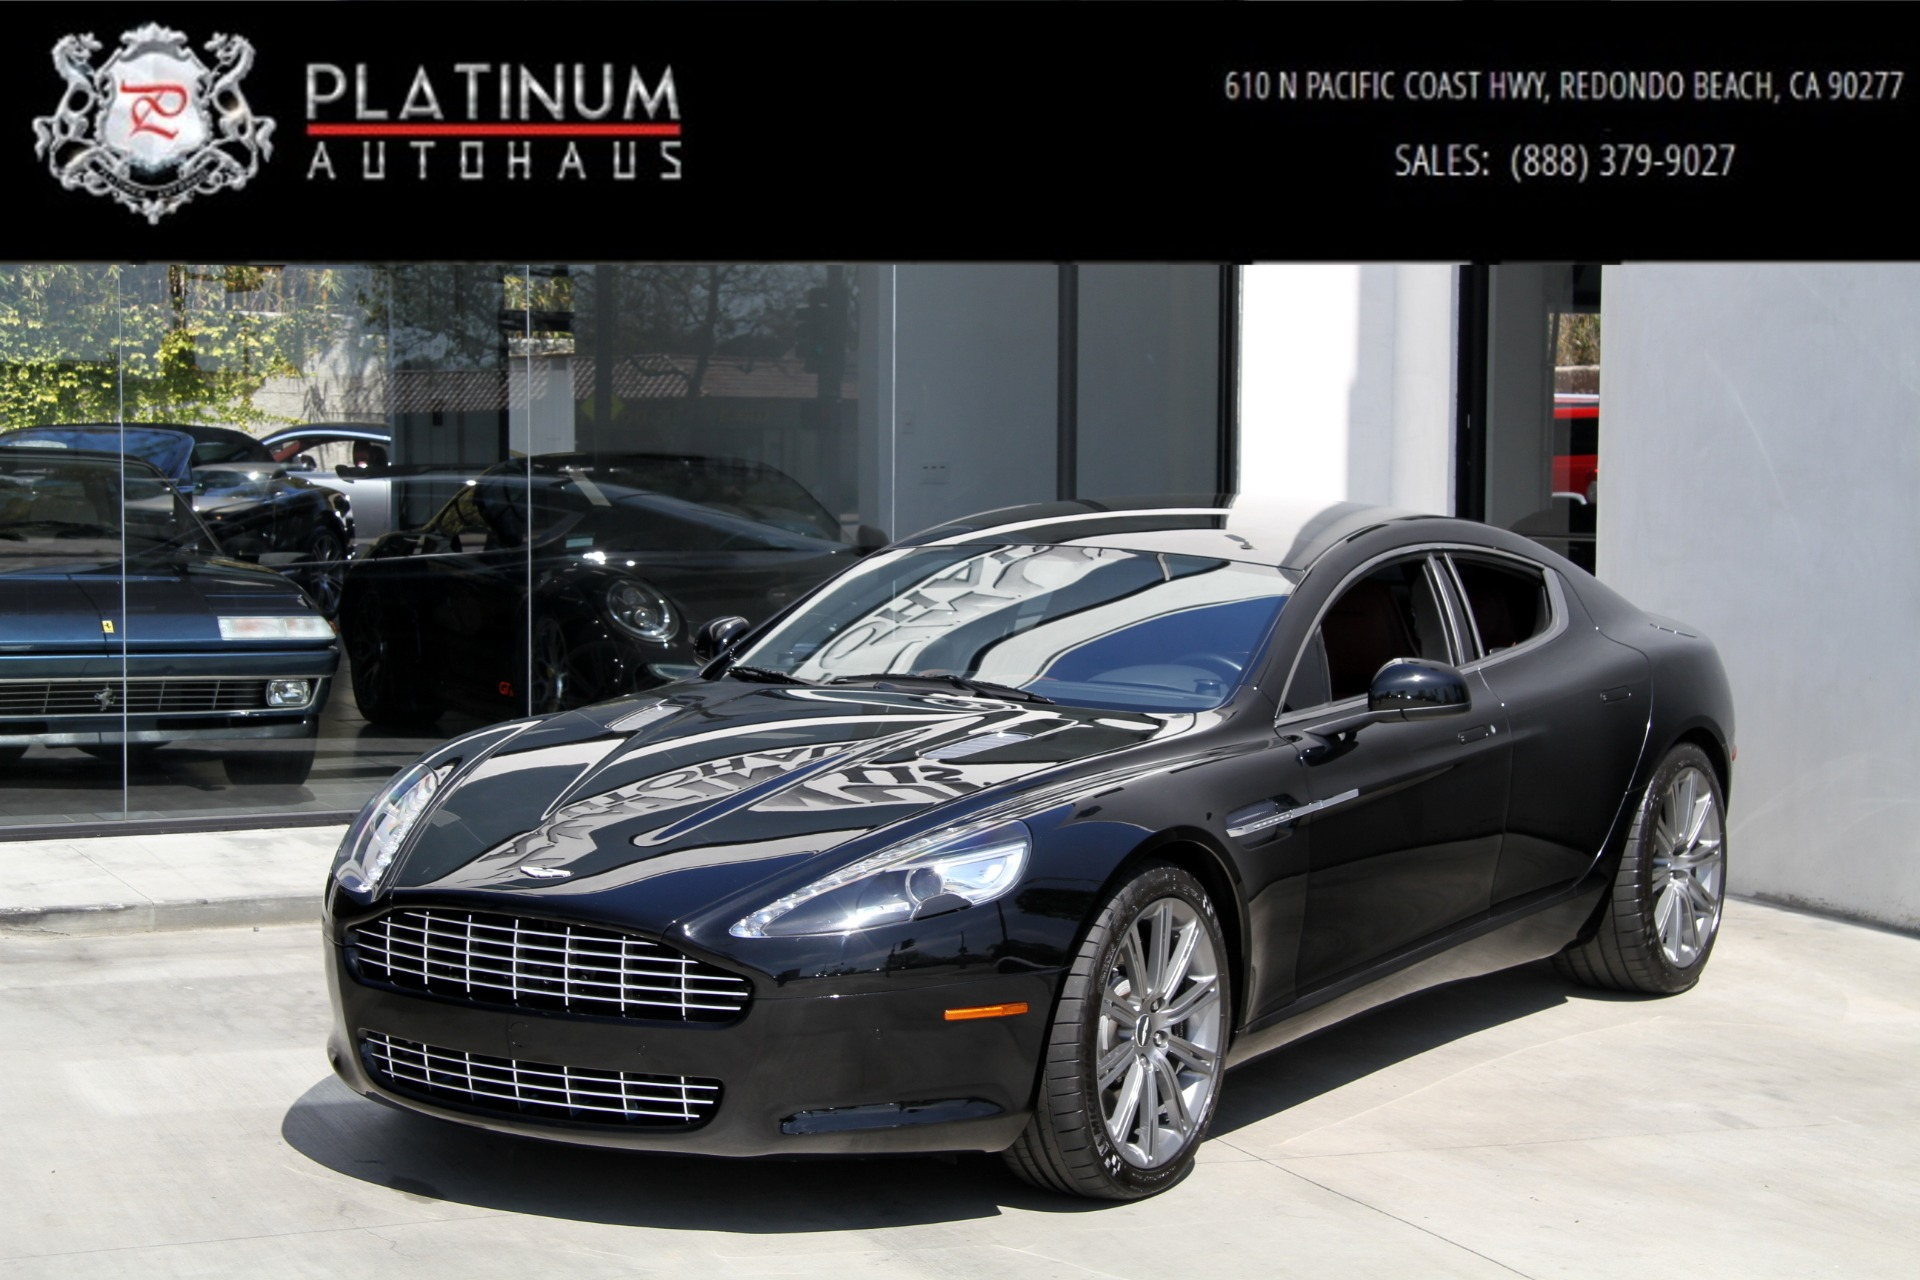 2010 aston martin rapide stock 6149 for sale near redondo beach ca ca aston martin dealer. Black Bedroom Furniture Sets. Home Design Ideas